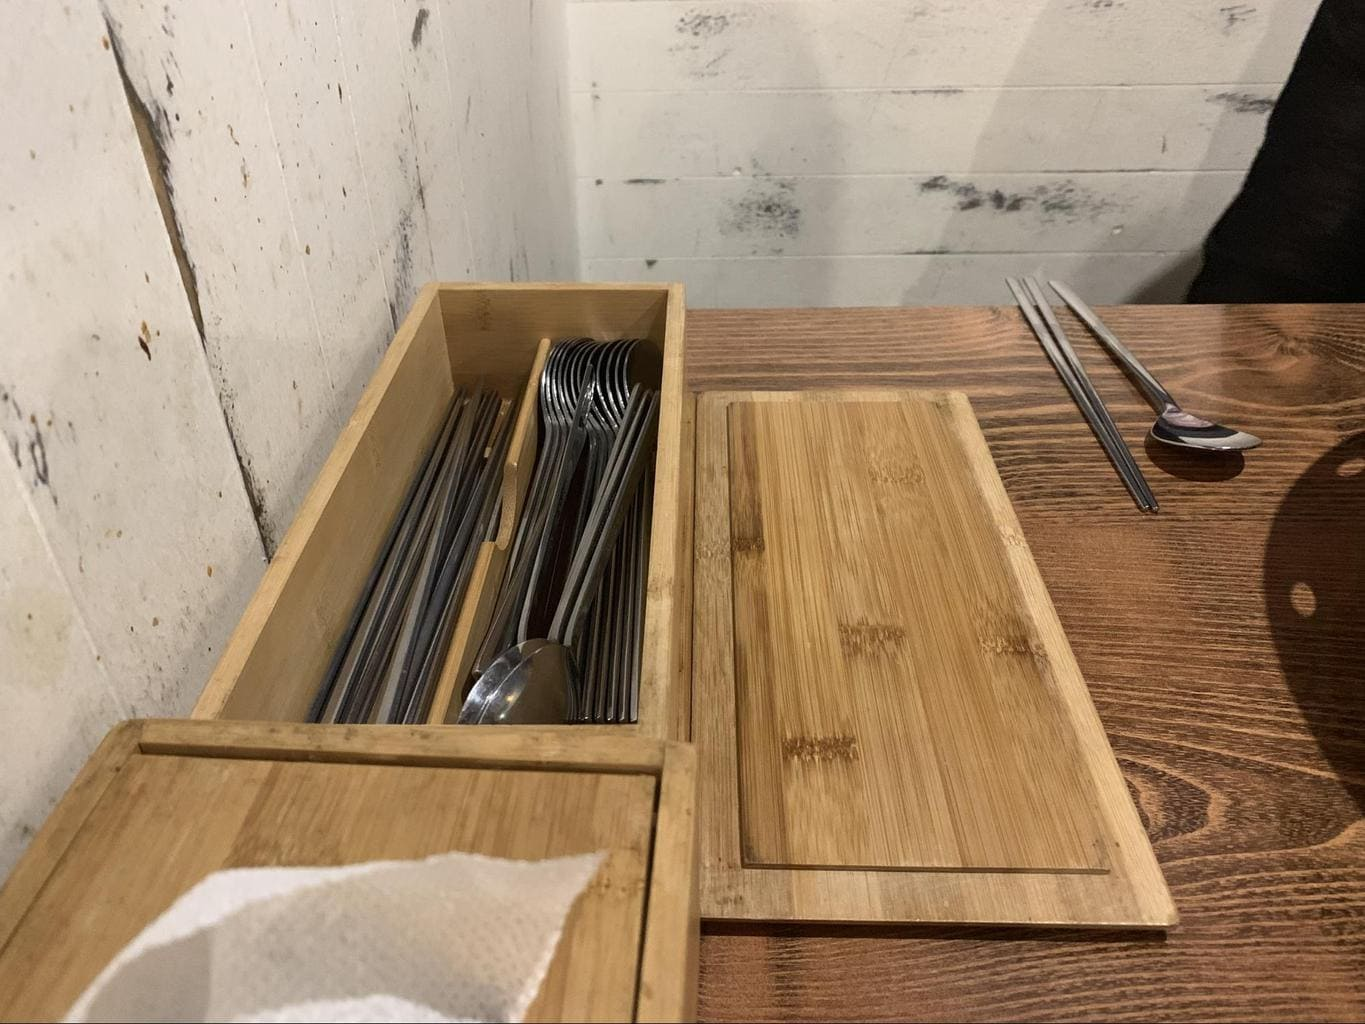 Cutlery is hidden in a box